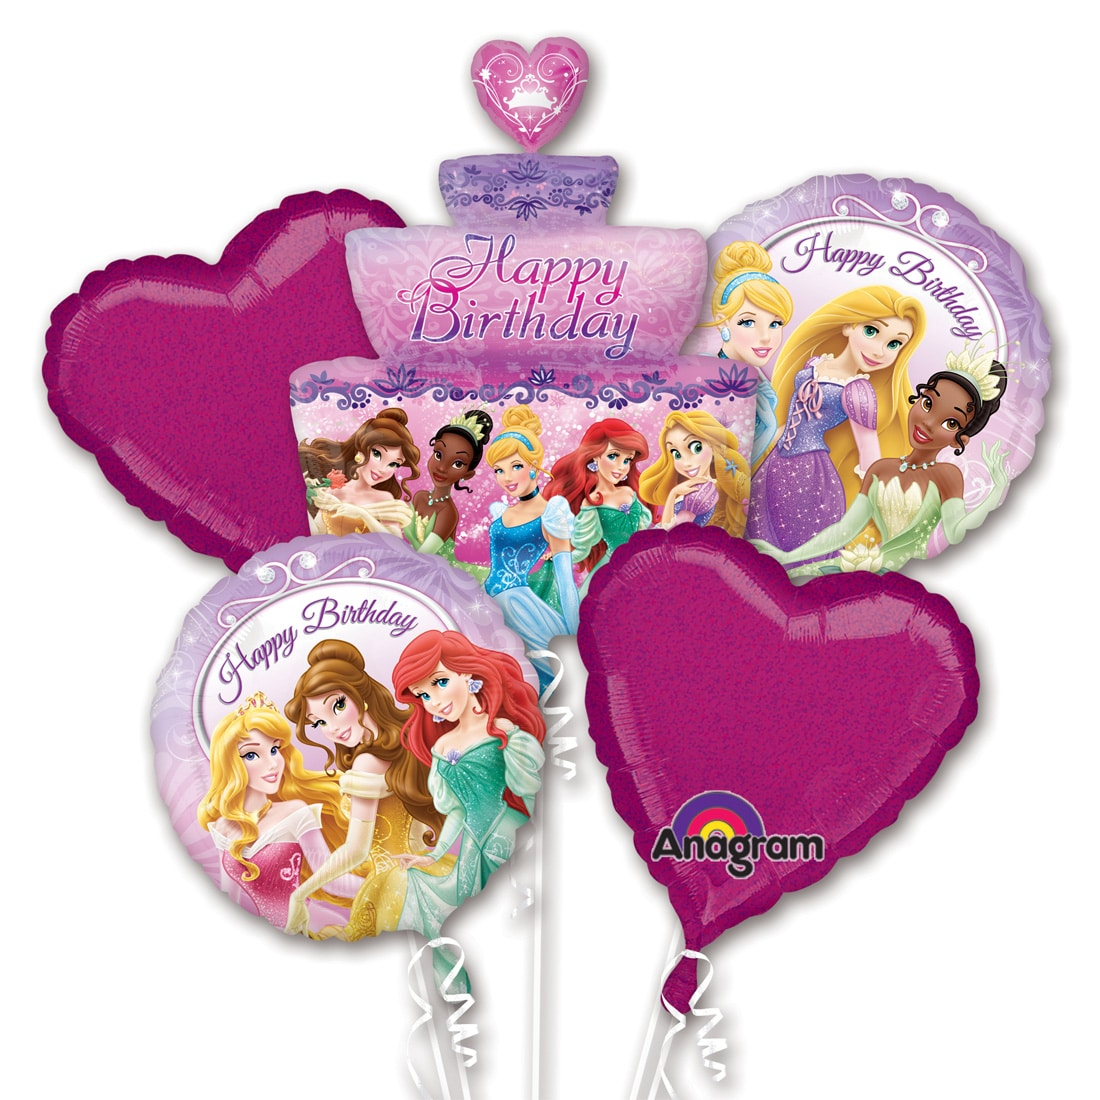 Disney Princess Birthday Cake Balloon Bouquet From Balloon